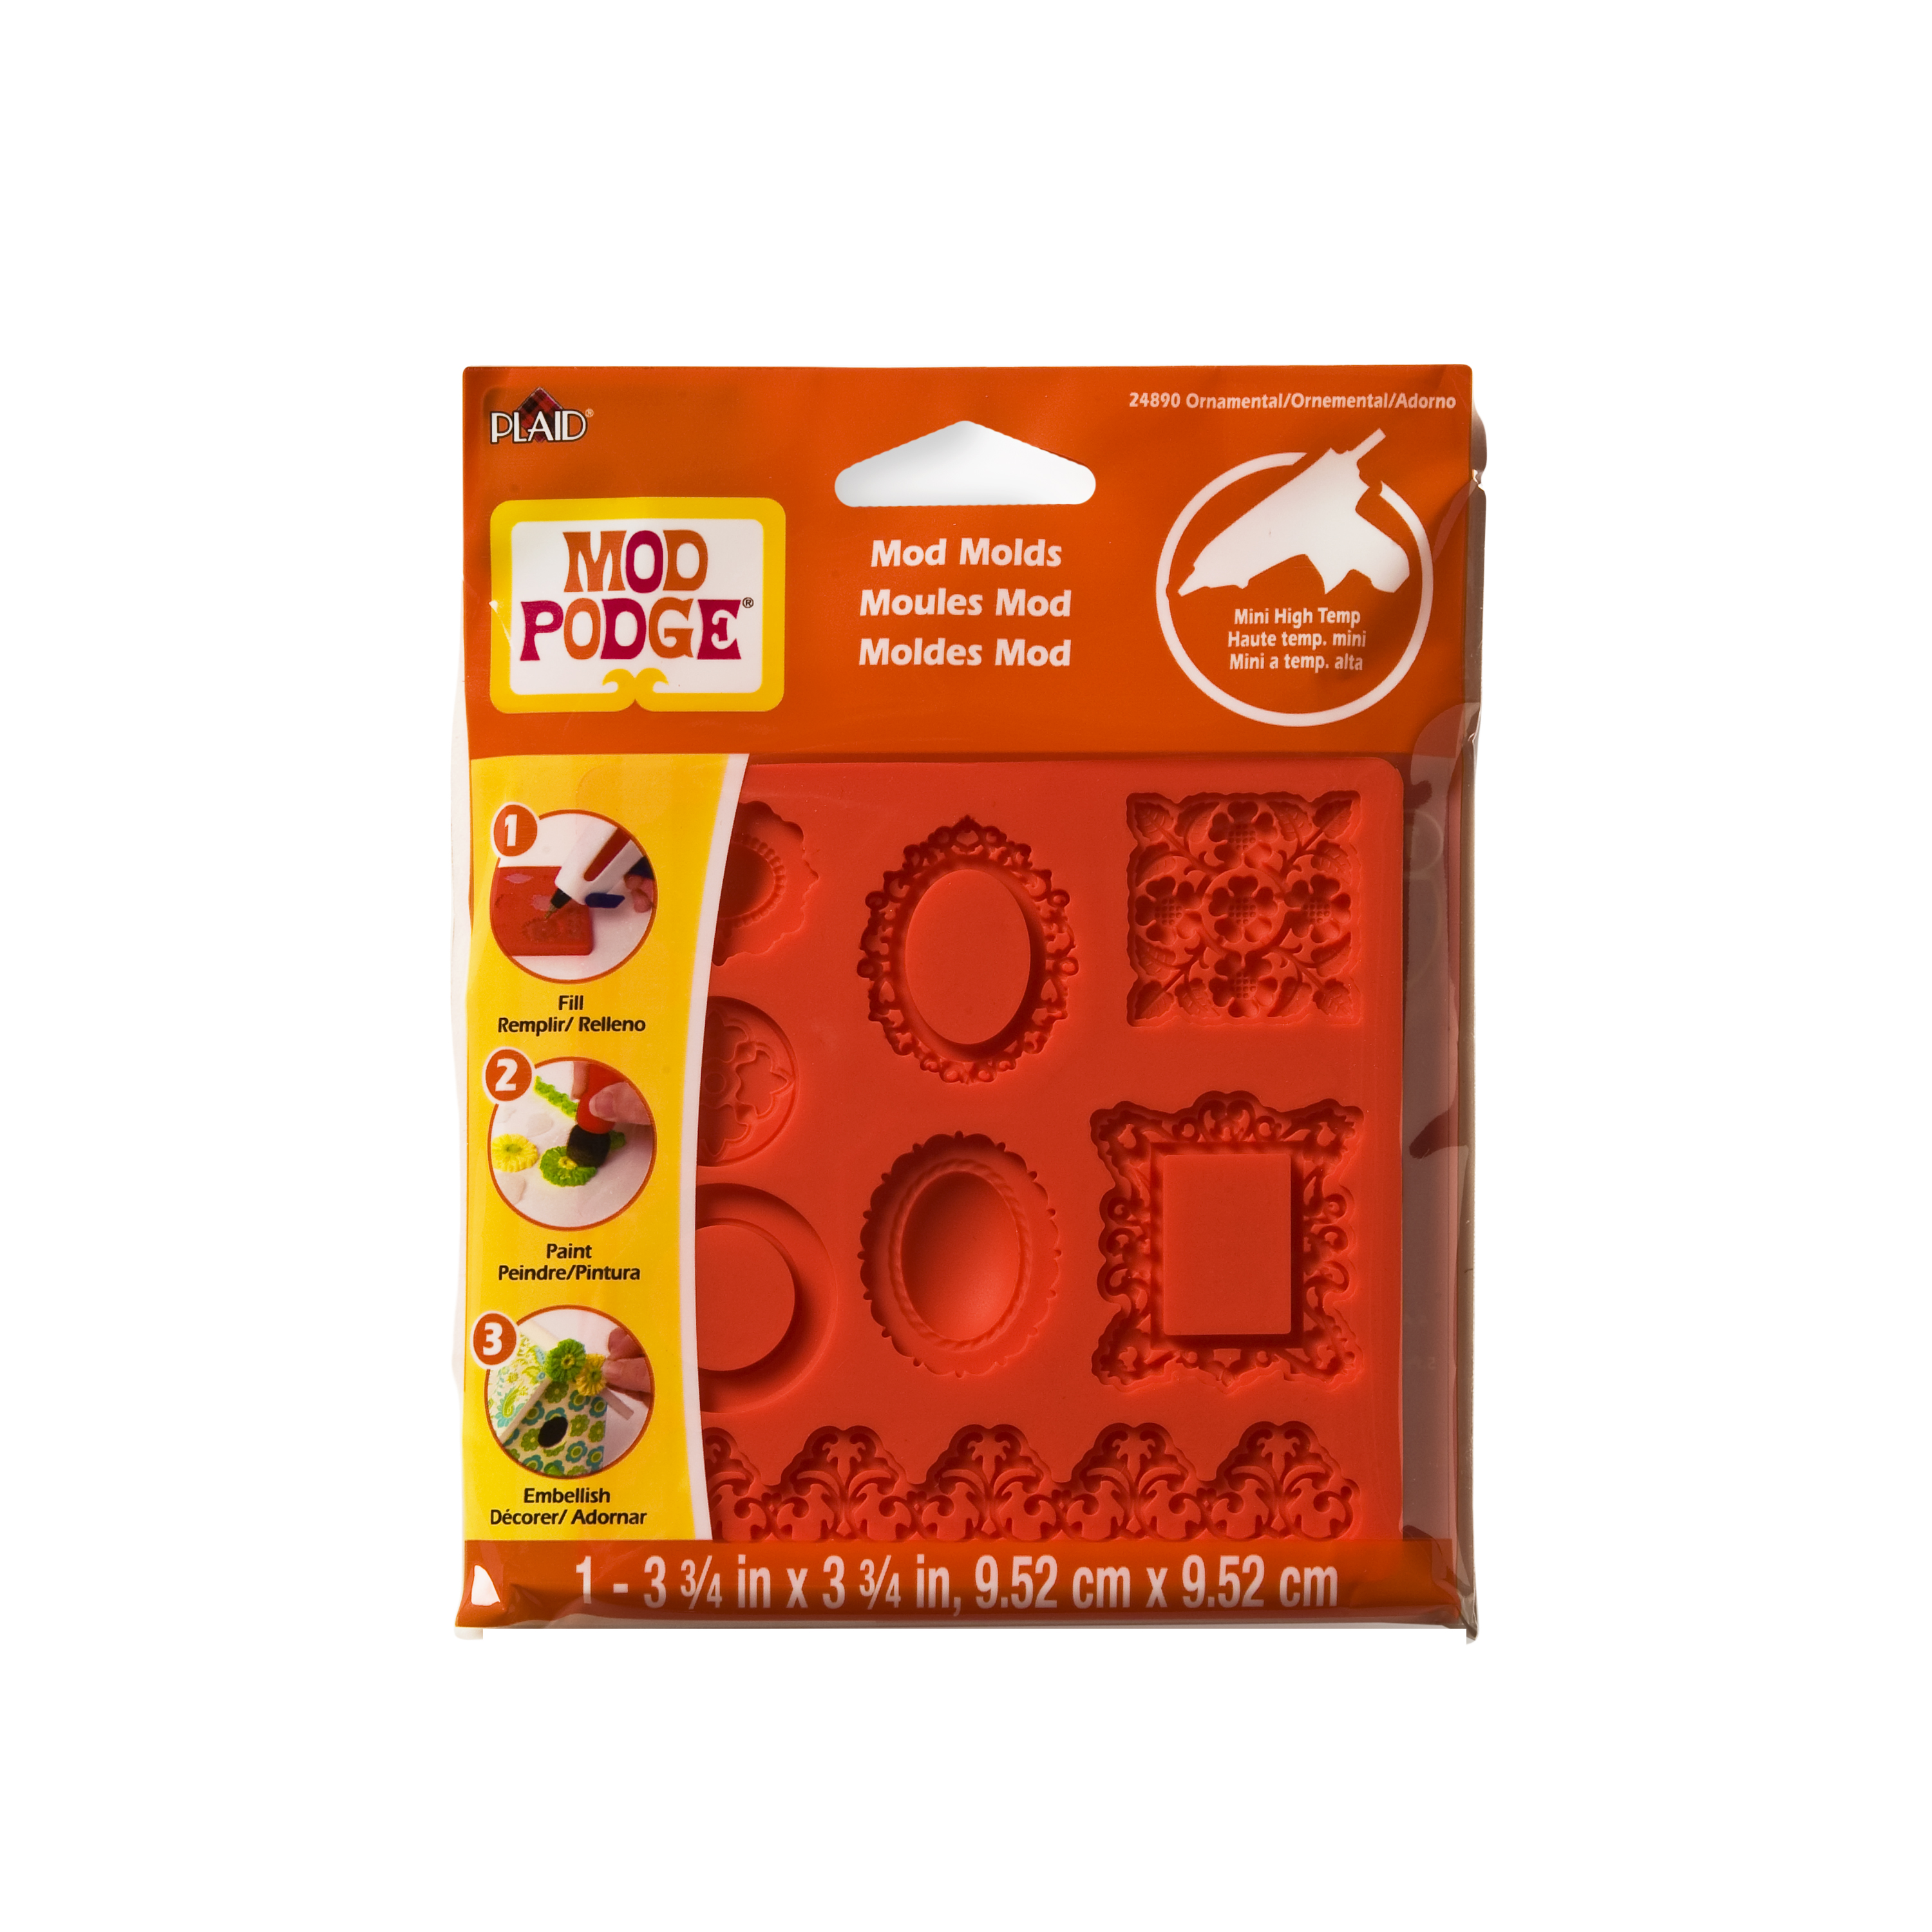 Mod   Podge Small Mod Mold by Plaid, Ornaments, 8 Designs